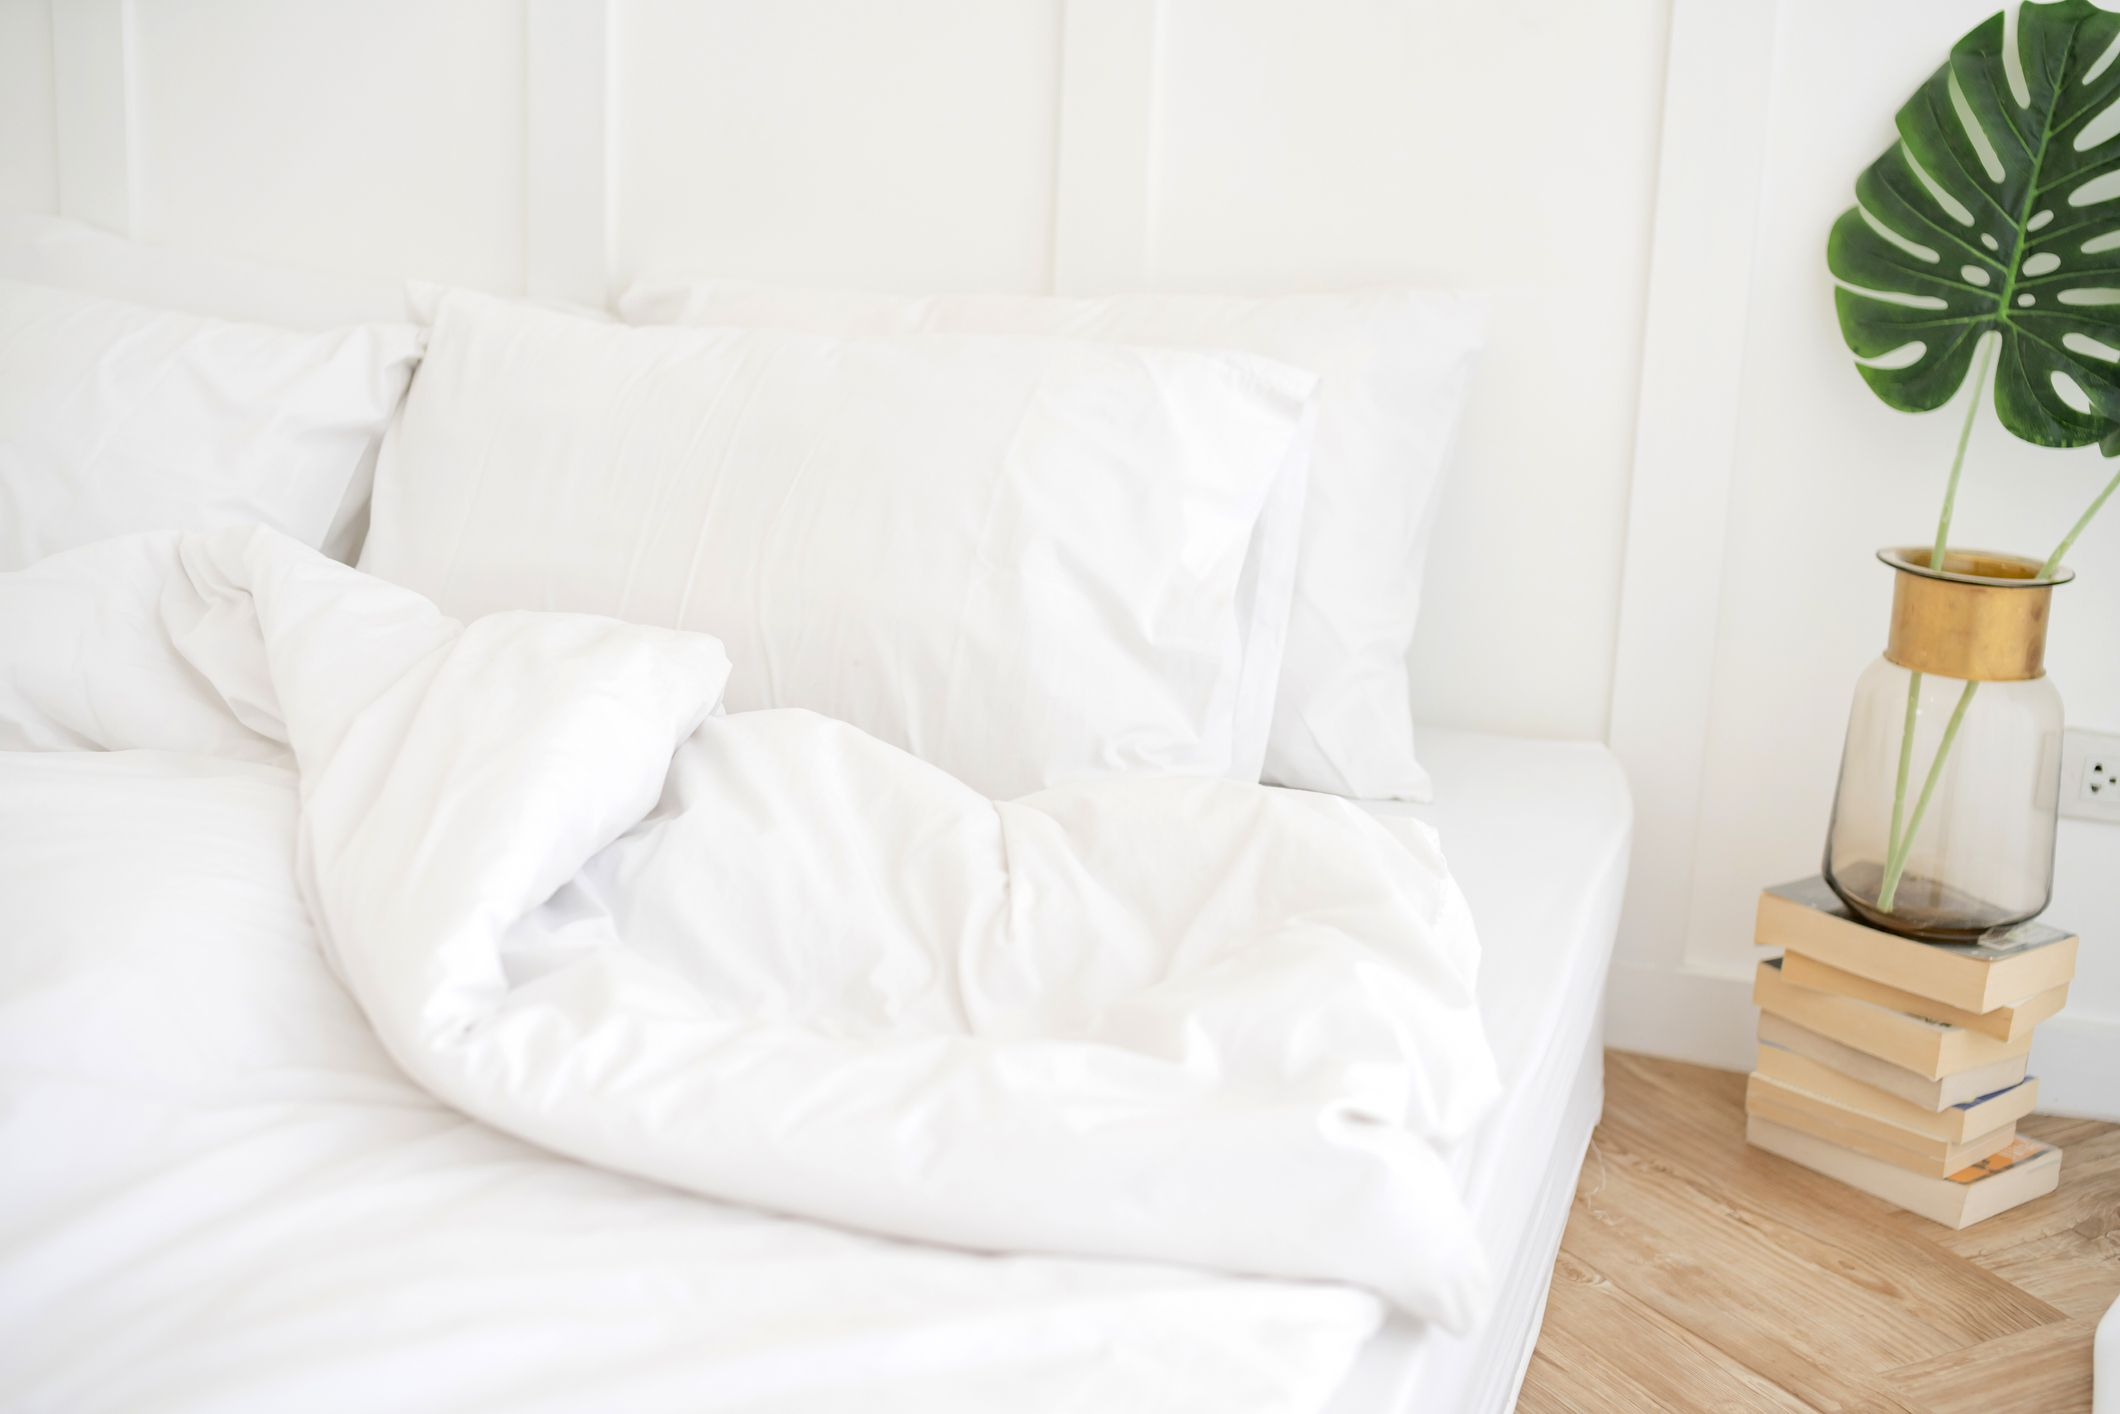 Brooklinen vs. Parachute: Which Sheets Are Right for You?